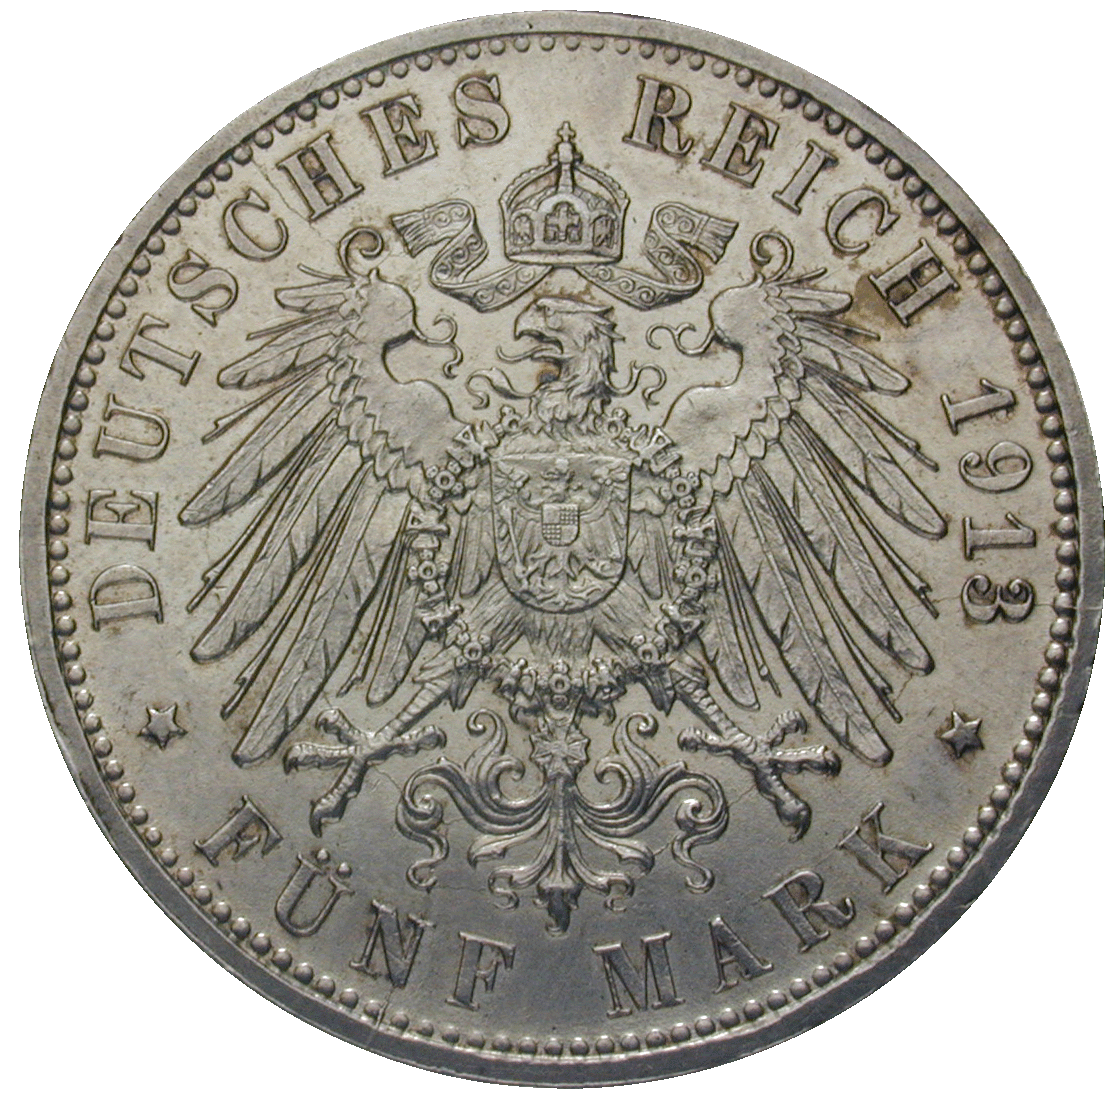 German Empire, Wilhelm II, Free Hanseatic City of Hamburg, 5 Mark 1913 (reverse)